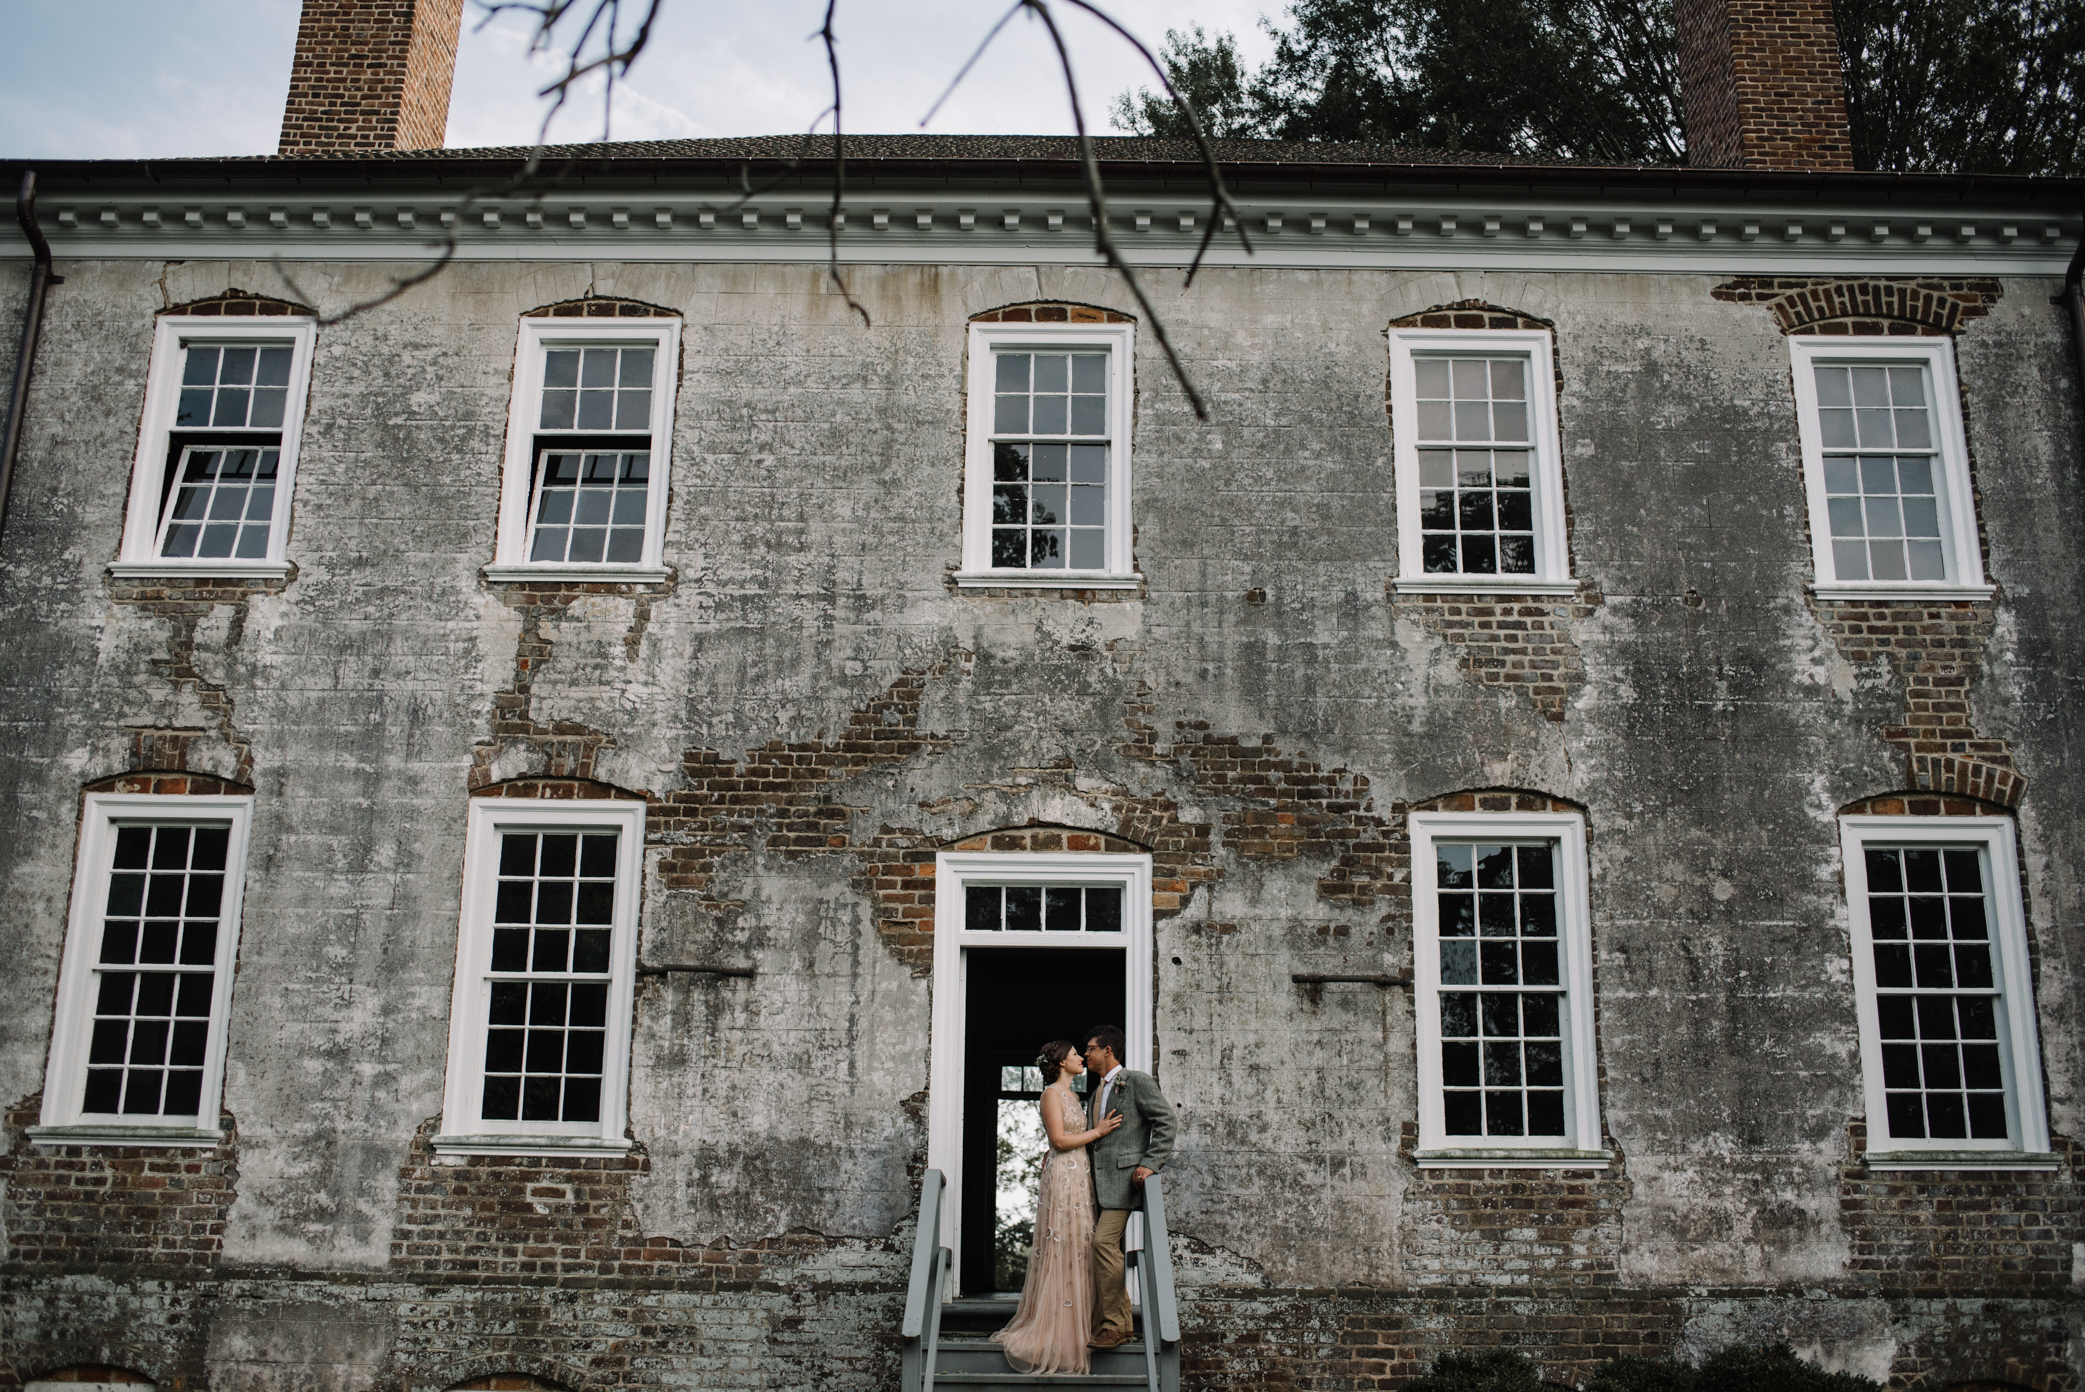 Salubria Historic Manor House Virginia - Moody Scottish Highland Wedding Styled Shoot - White Sails Creative - Sage and Silhouettes - BHLDN - Bijous Sweet Treats_149.JPG